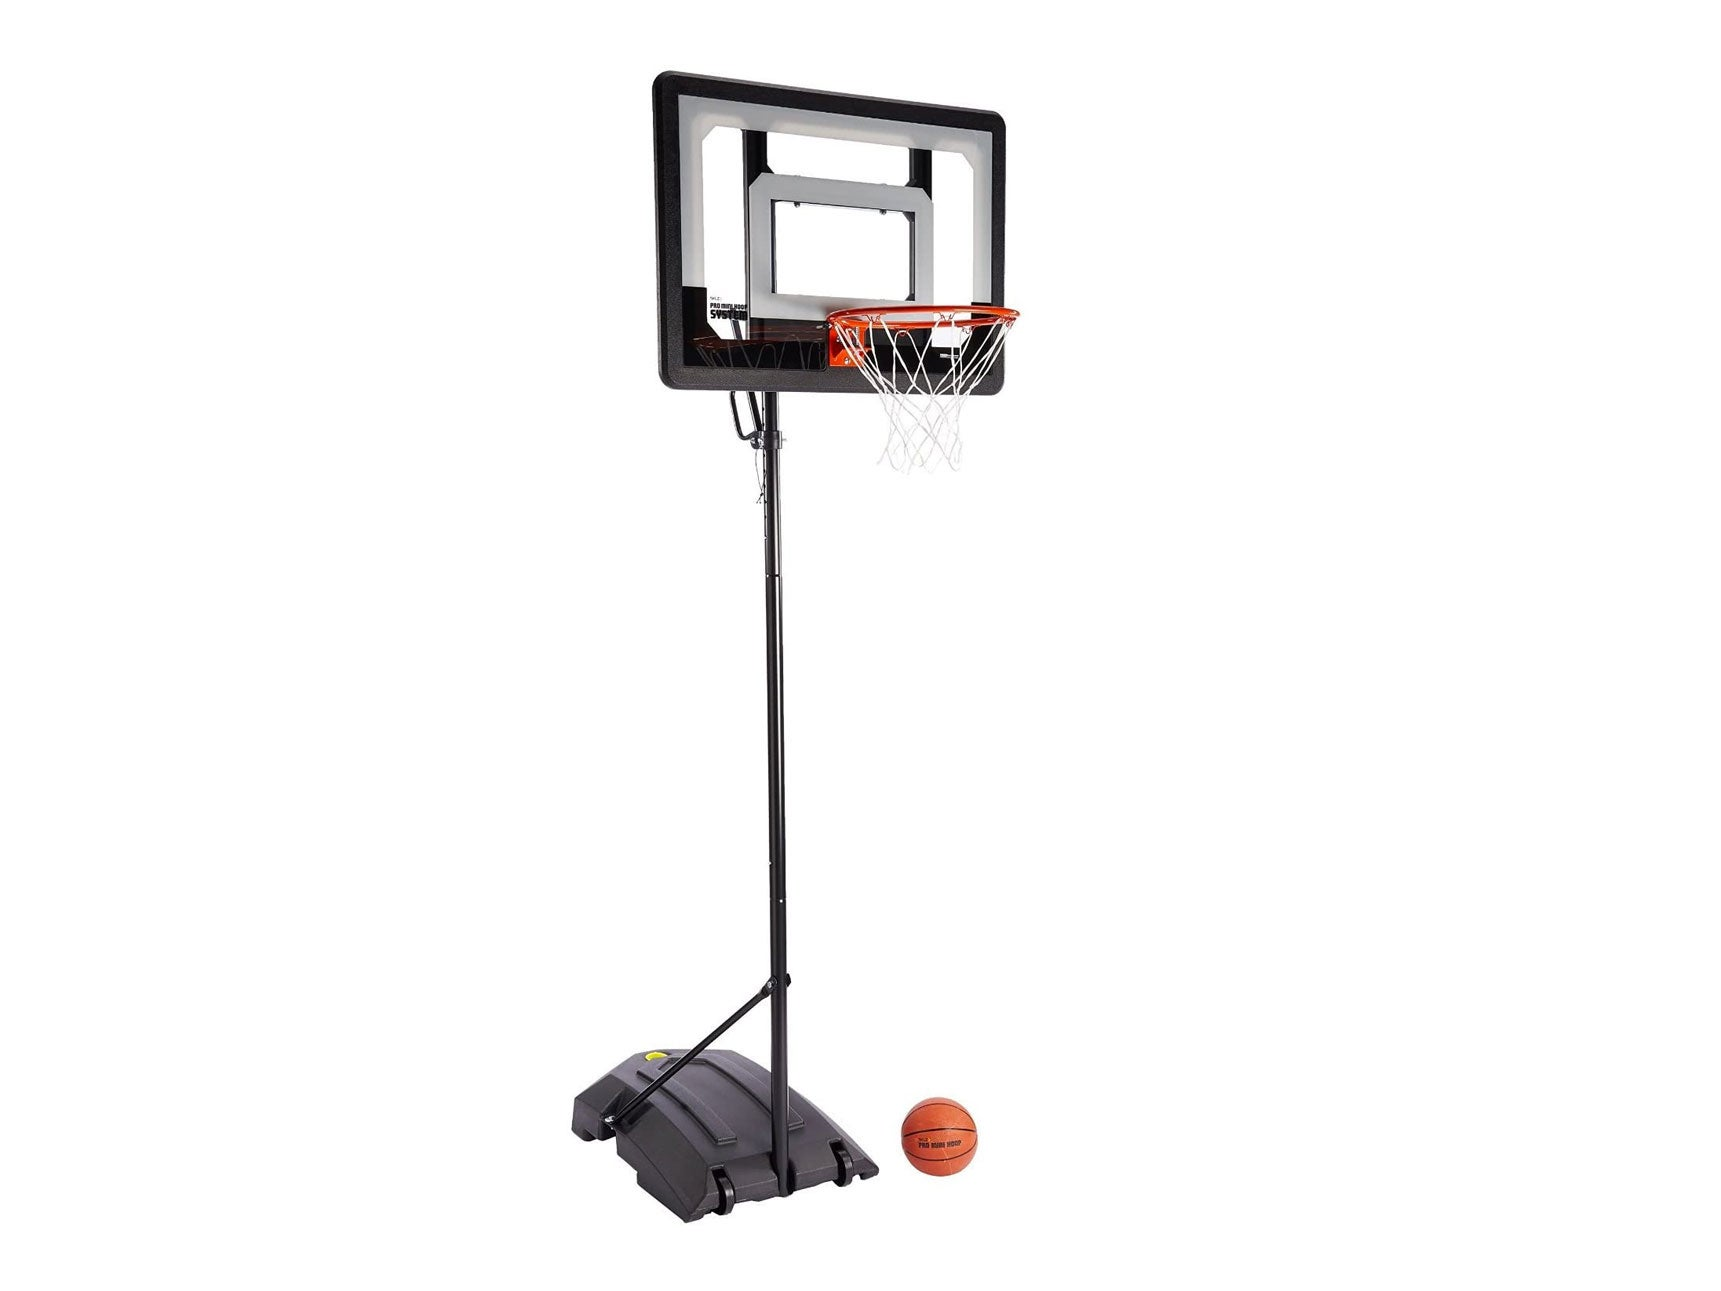 SKLZ Pro Mini Hoop Basketball System with Adjustable-Height Pole and 7-Inch Ball